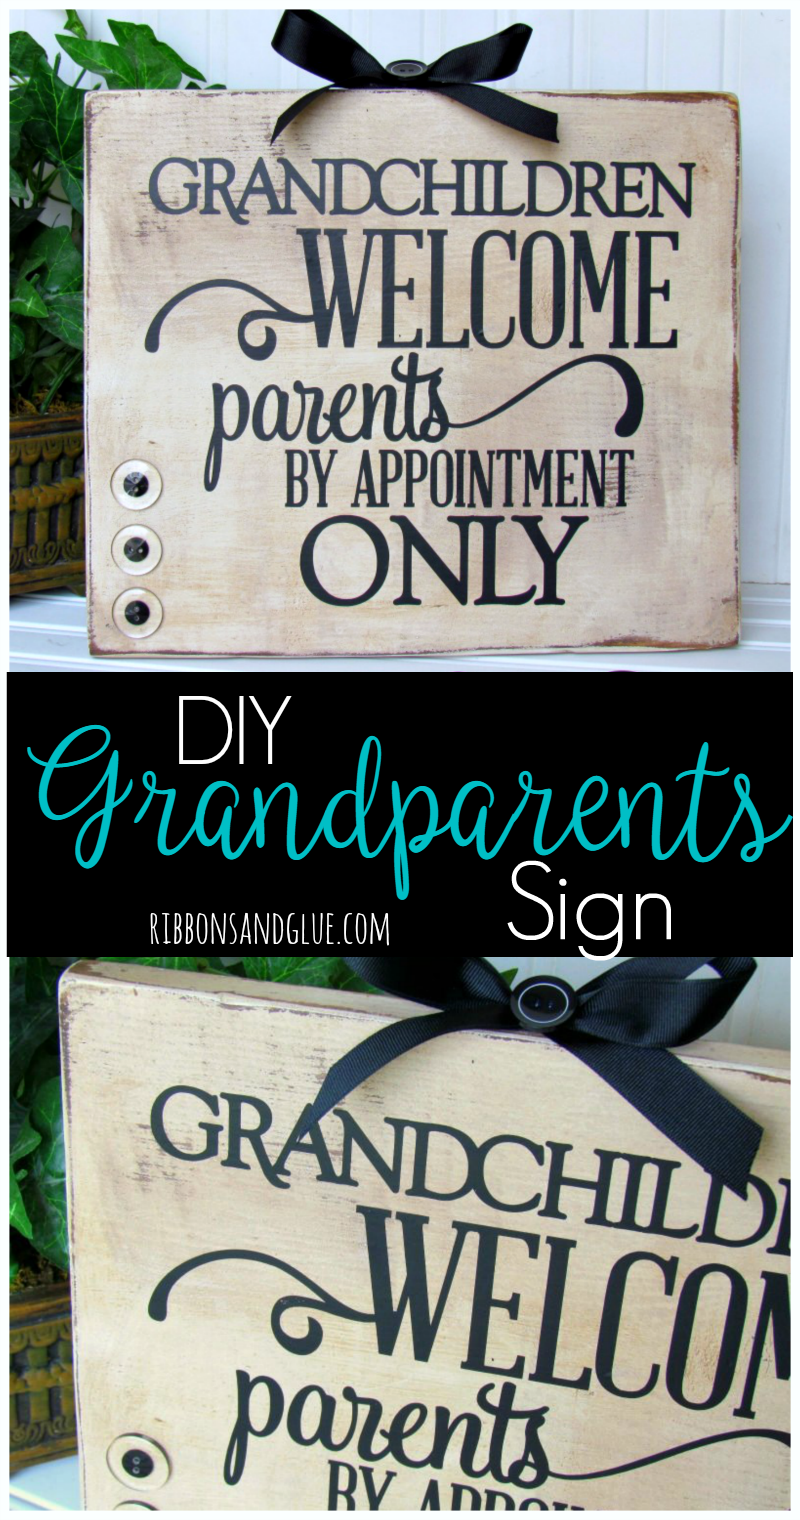 Give the Grandparents a unique gift for Grandparents Day by creating this Grandchildren Welcome Sign made from a wood board an vinyl lettering.